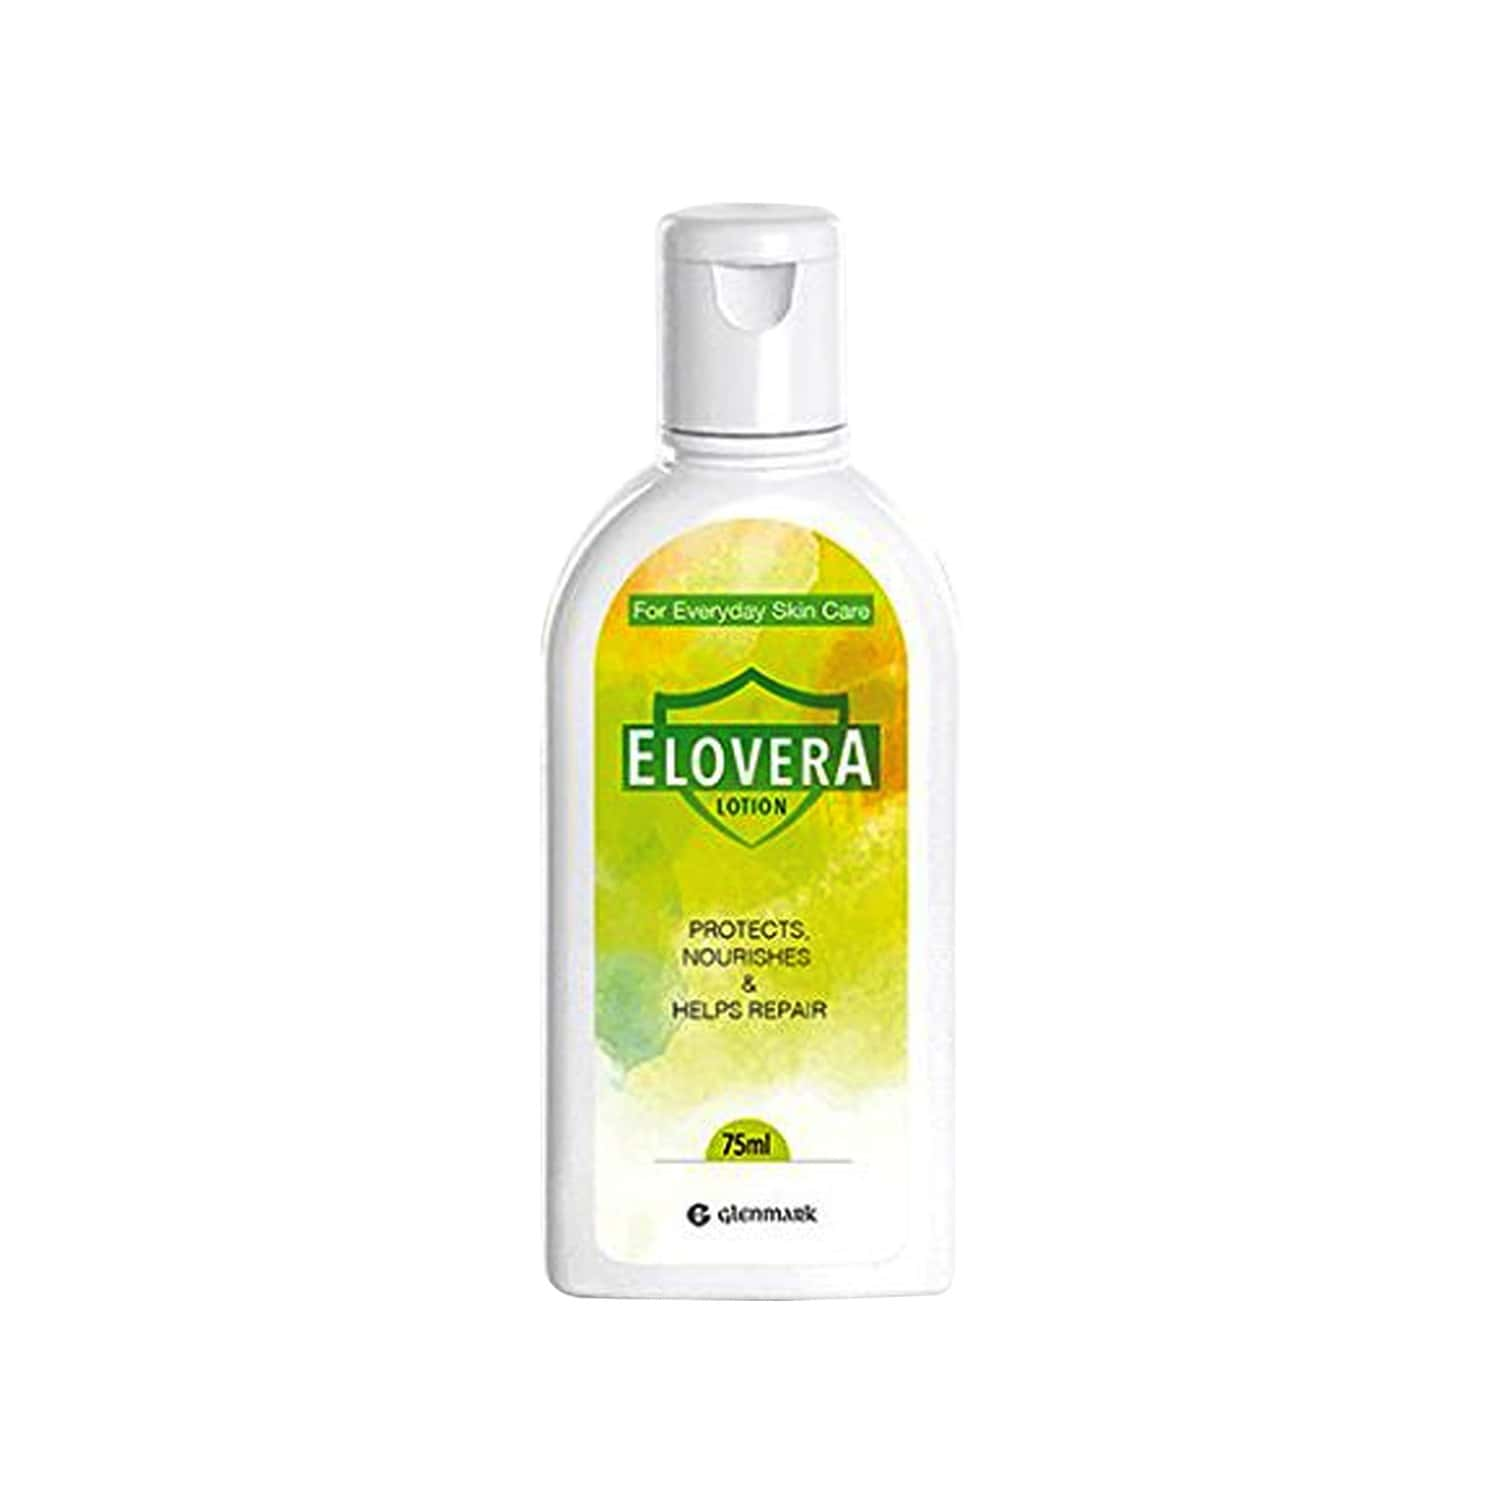 Elovera Moisturizer Bottle Of 75 Ml